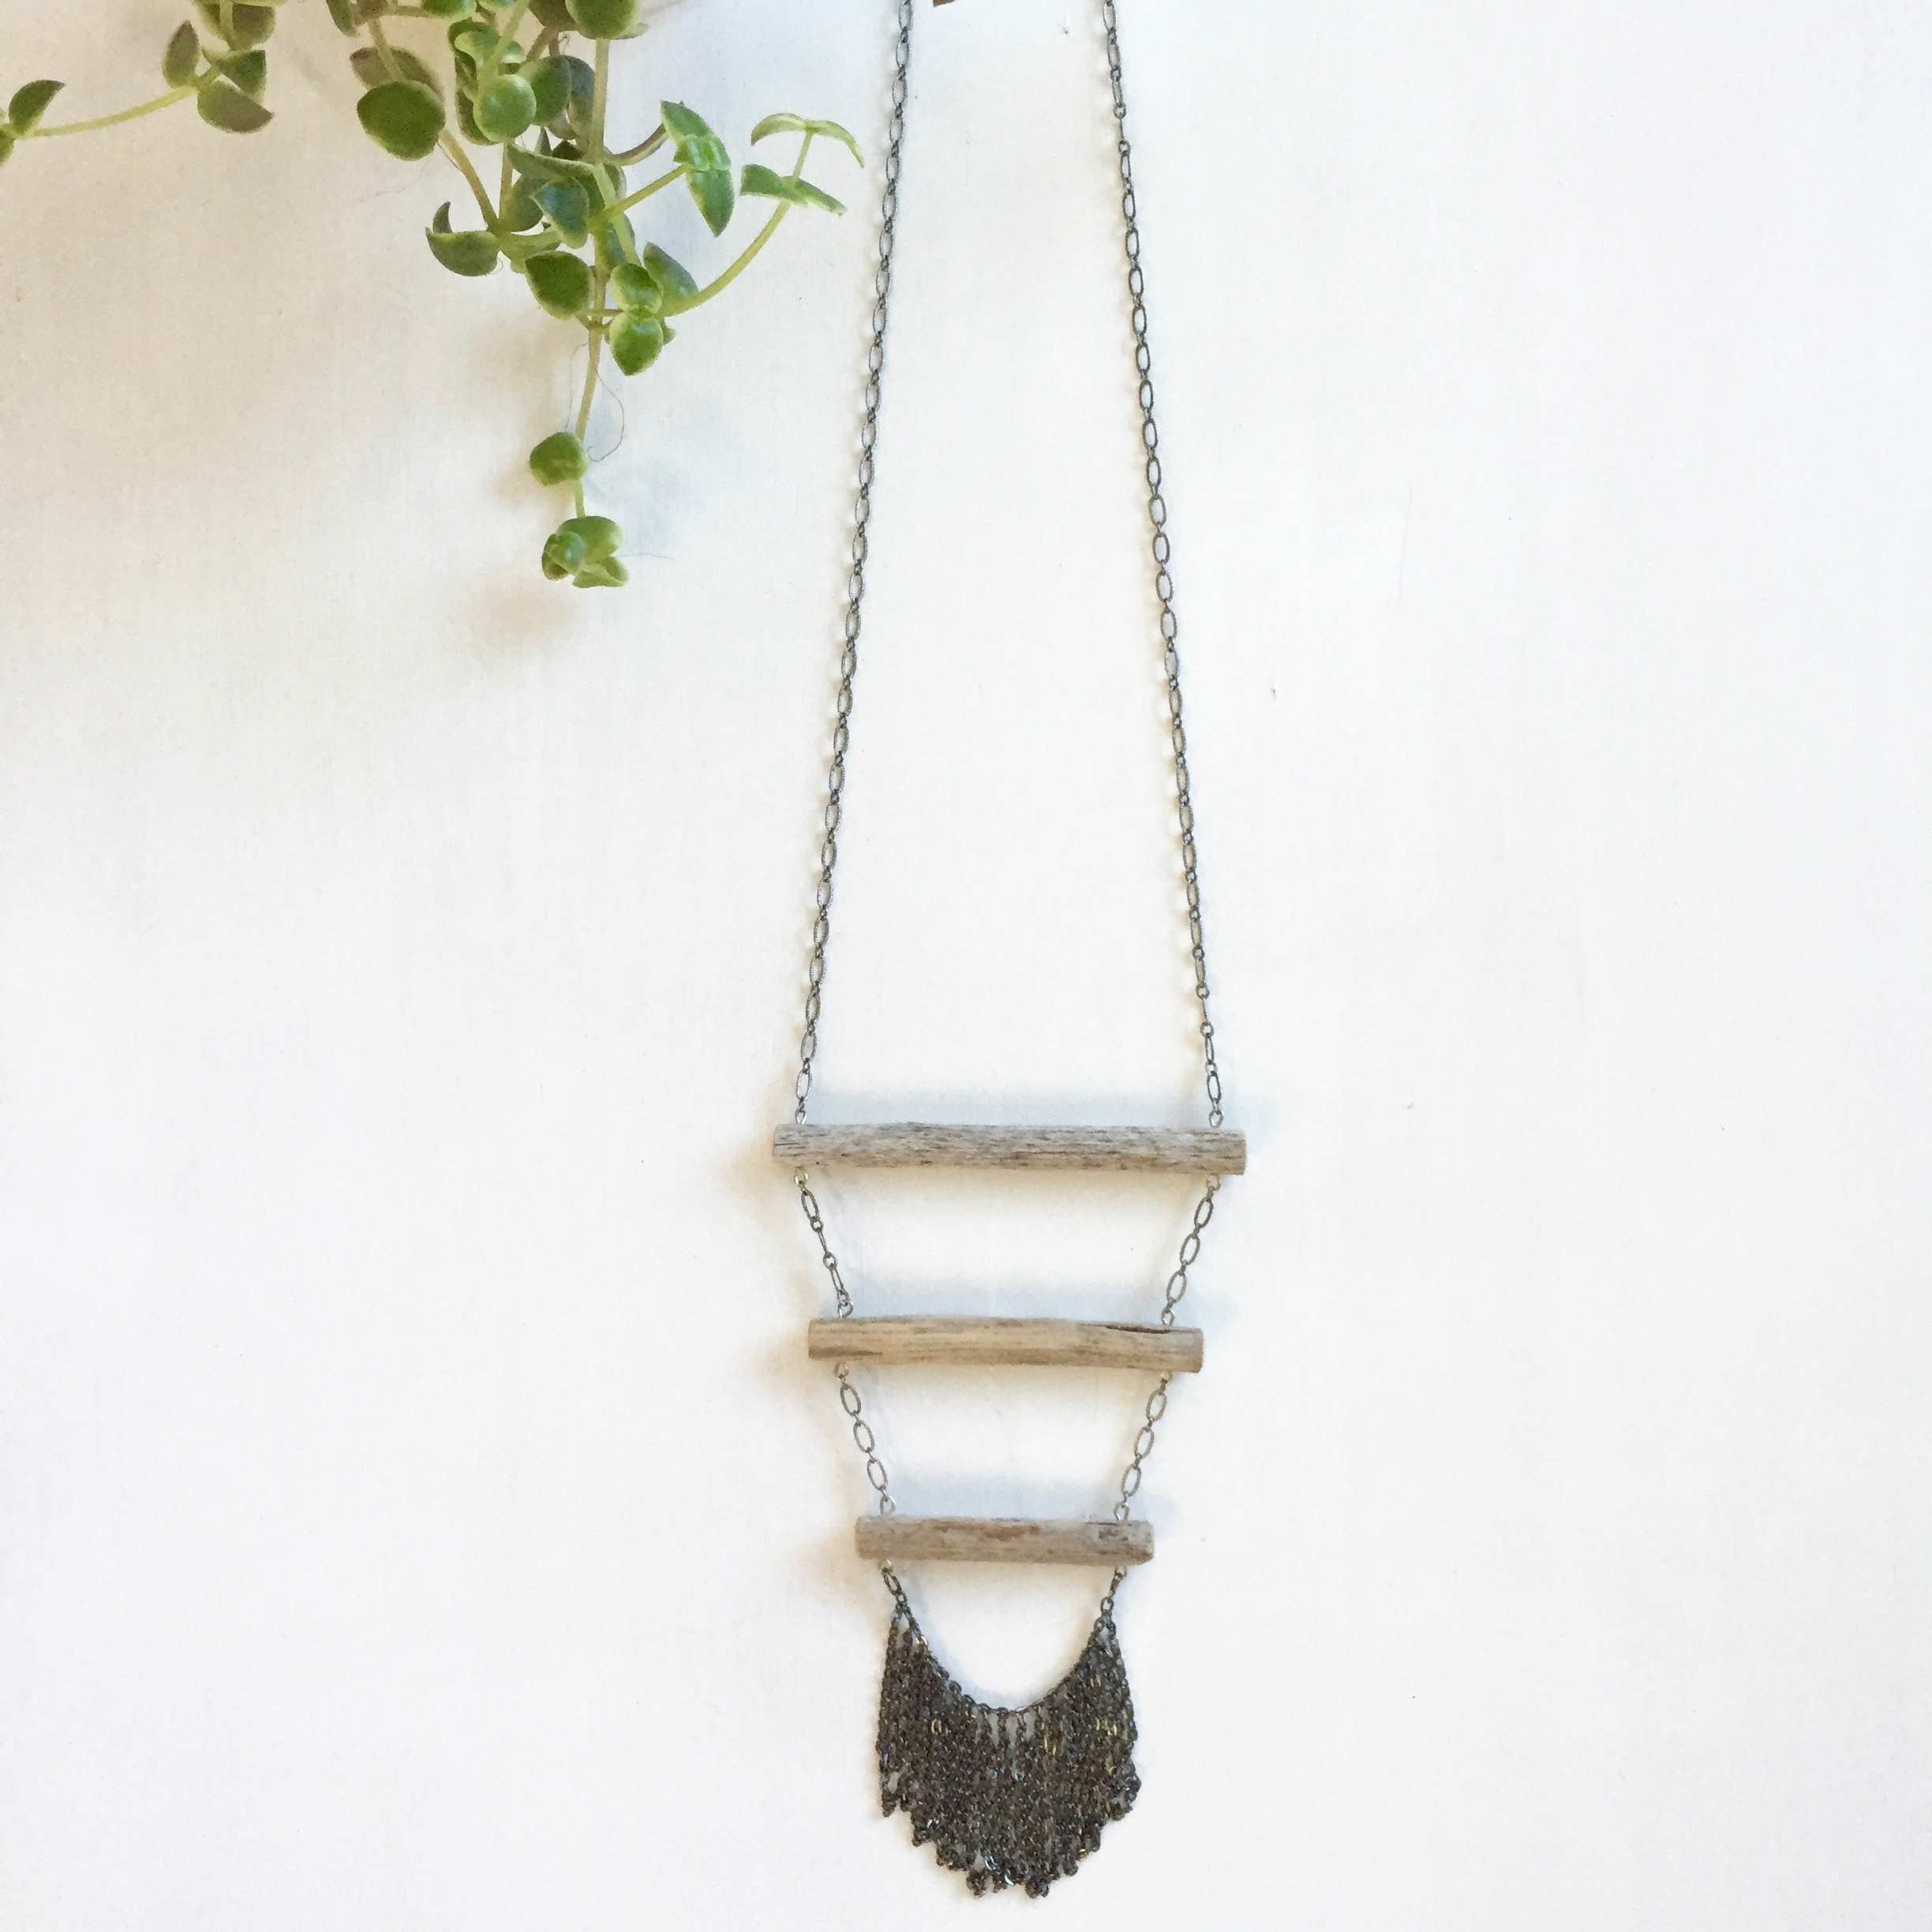 Ladder Necklace (Johanna Sprague)